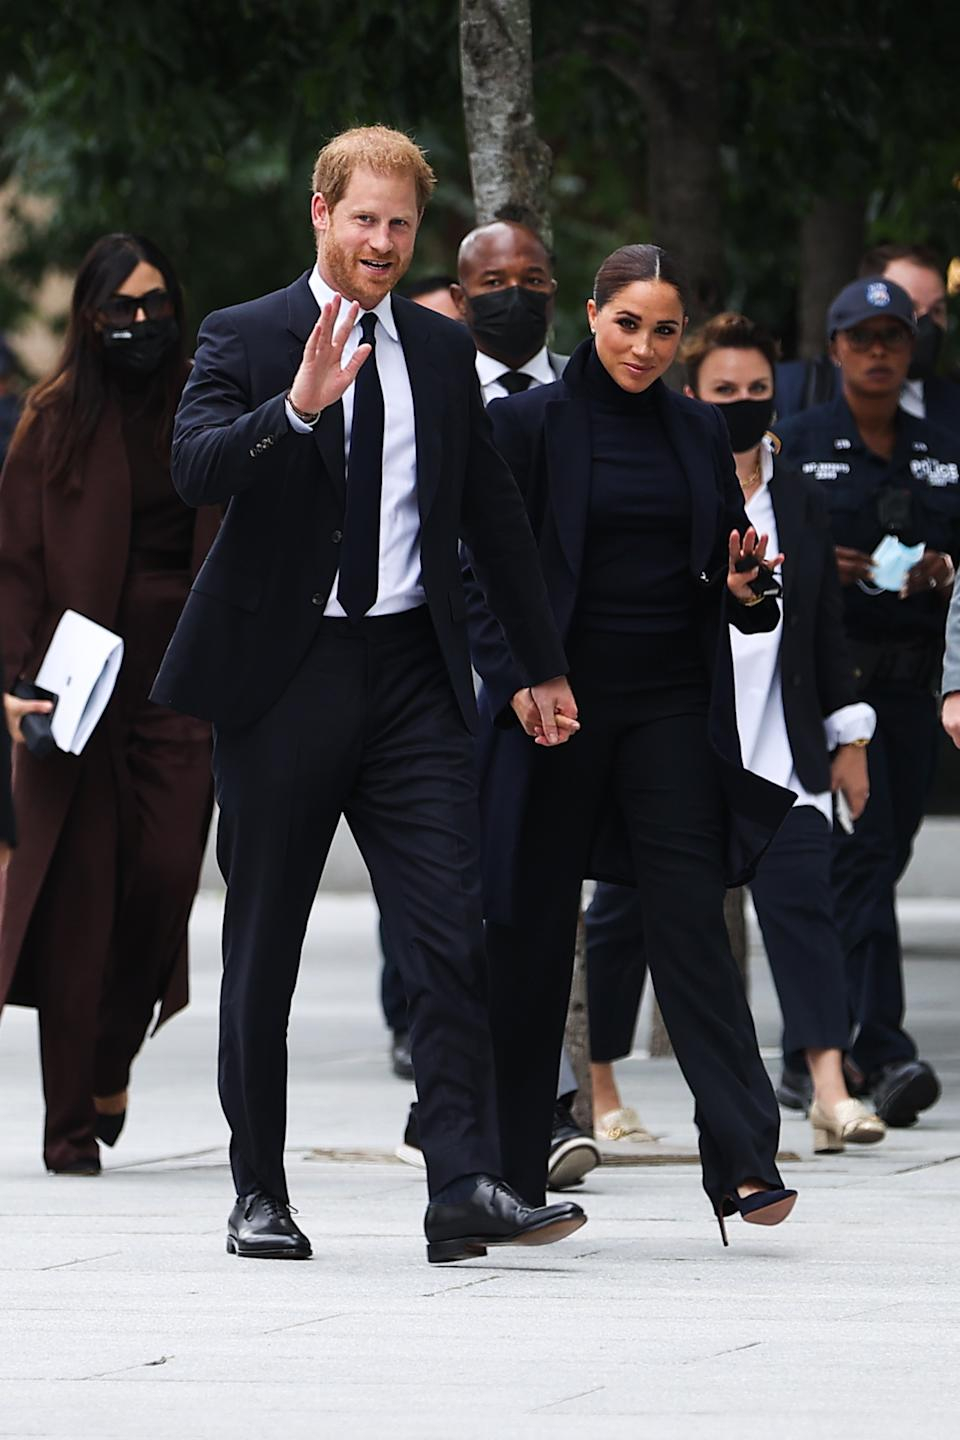 NEW YORK, NY - SEPTEMBER 23: Prince Harry and Meghan Markle visit the One World Observatory as NY Governor Hochul and NYC Mayor Blasio walk along with them in New York City, United States on September 23, 2021. (Photo by Tayfun Coskun/Anadolu Agency via Getty Images)